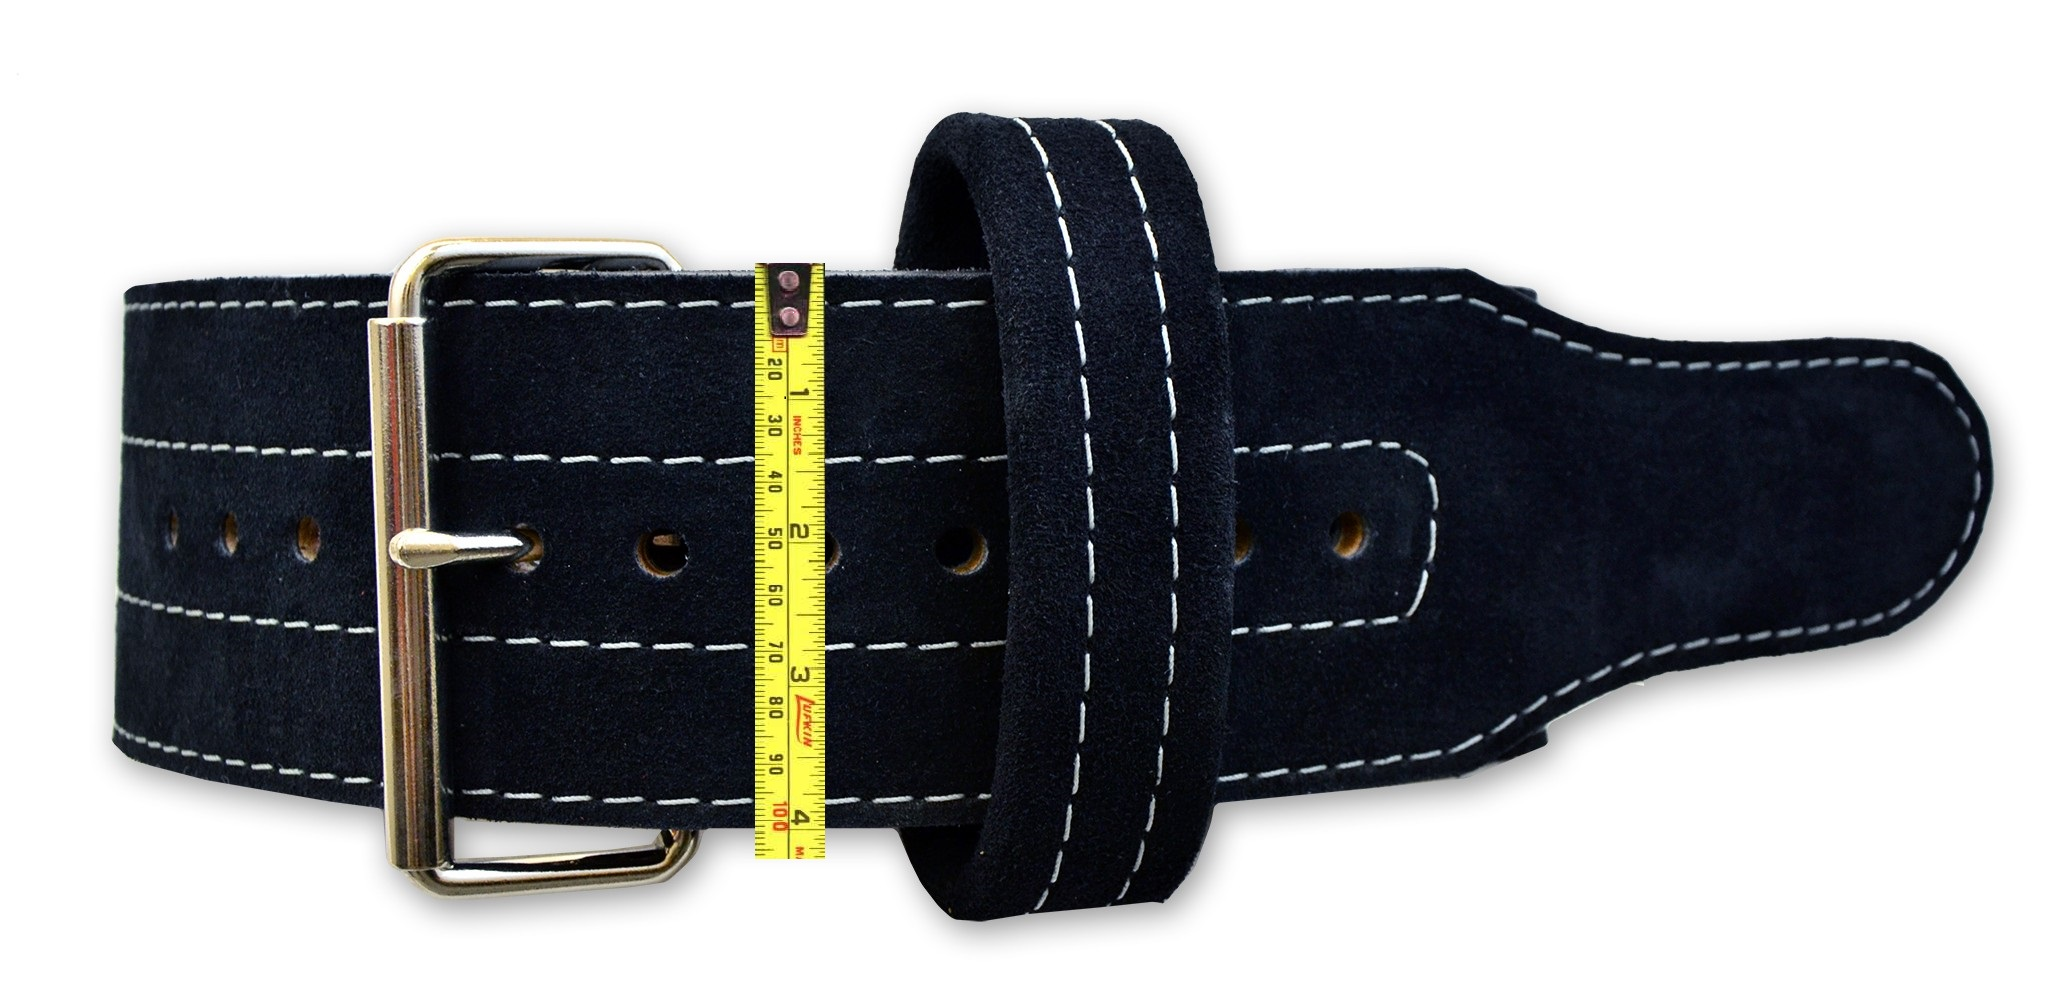 Leather Belts 4 Inches Wide